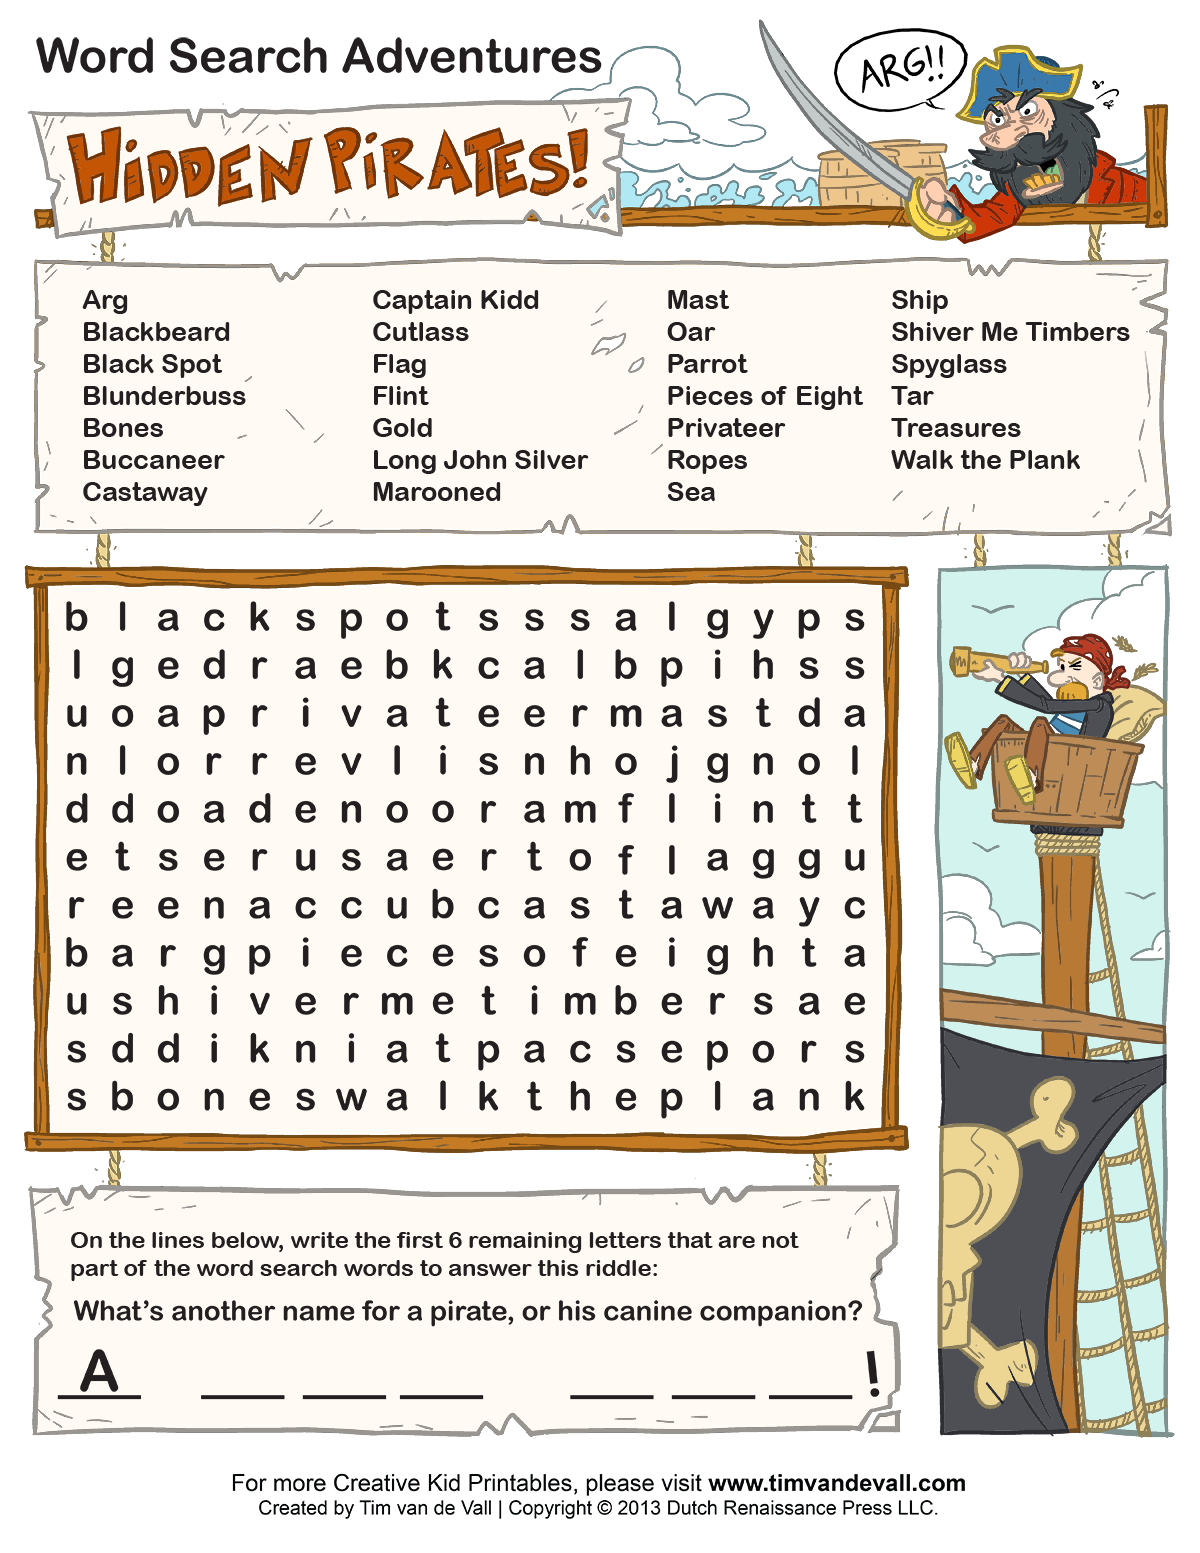 Free Printable Word Searches for Kids – Printable Word Search Worksheets